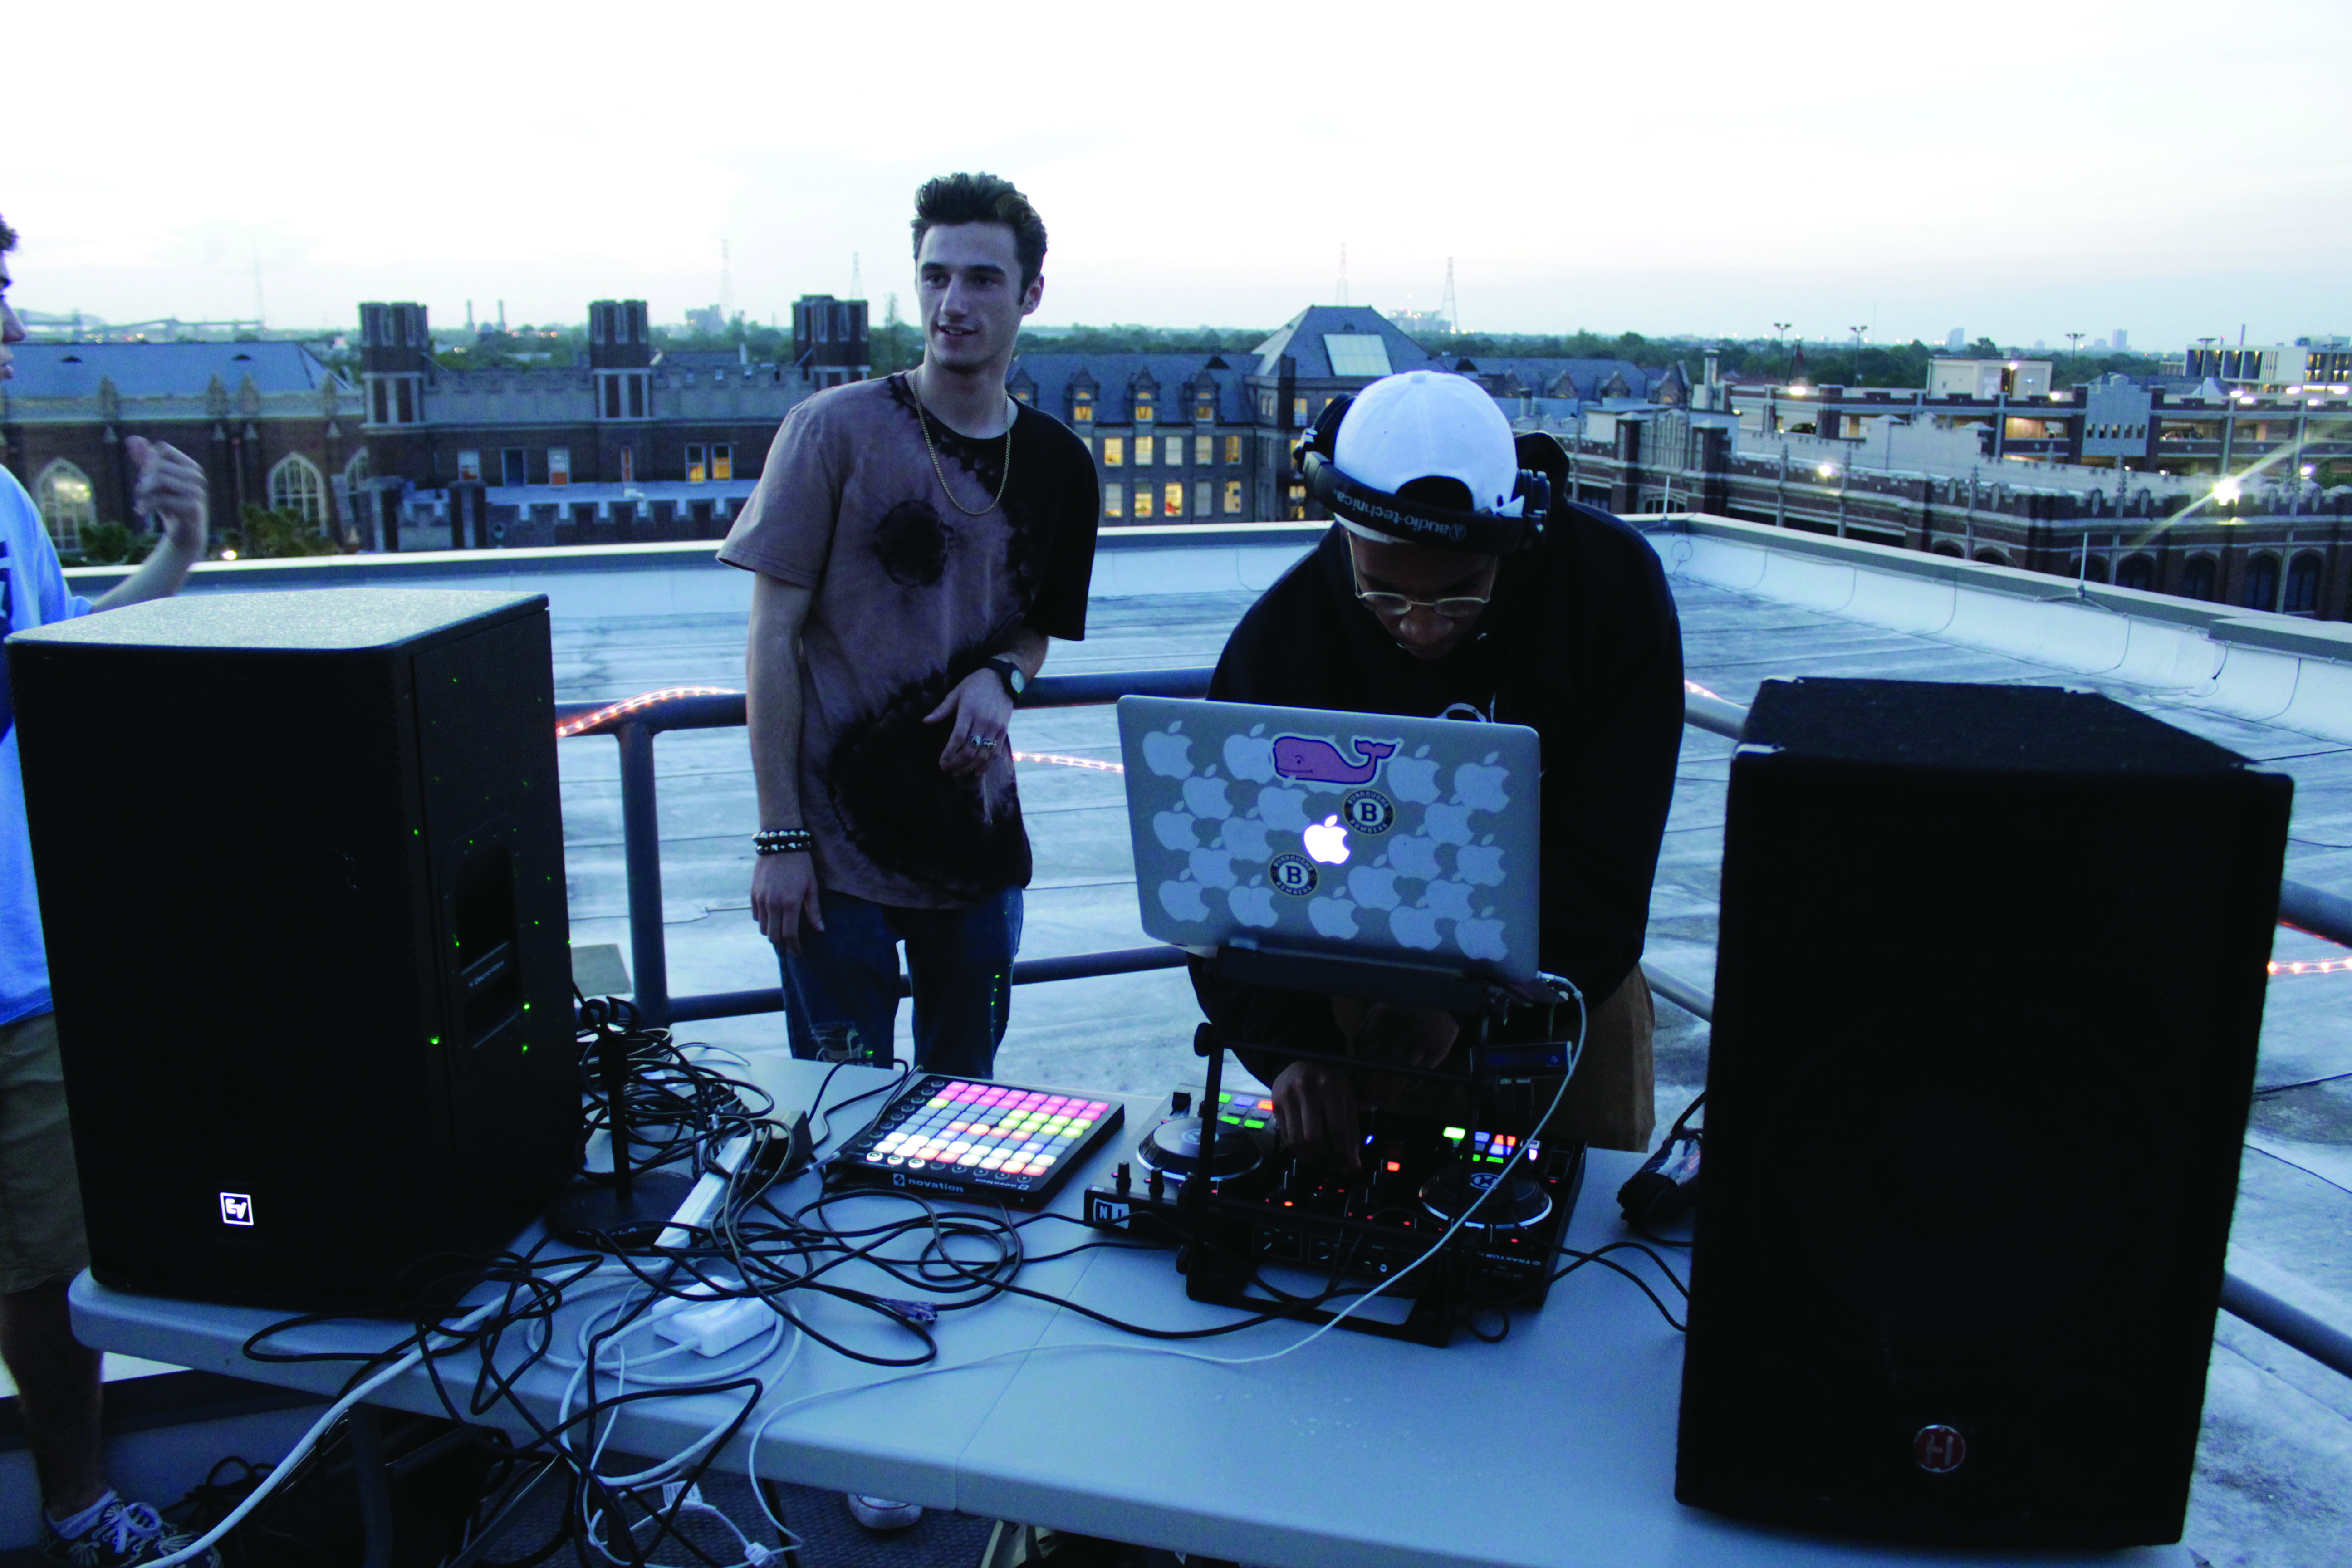 Rapper Skylar Allen (left) listens to DJ Derek Taylor (right) run the music for the Earth Day event. Taylor's DJ set followed a live performance from Tristin and Jana Sanders. Photo credit: John Casey